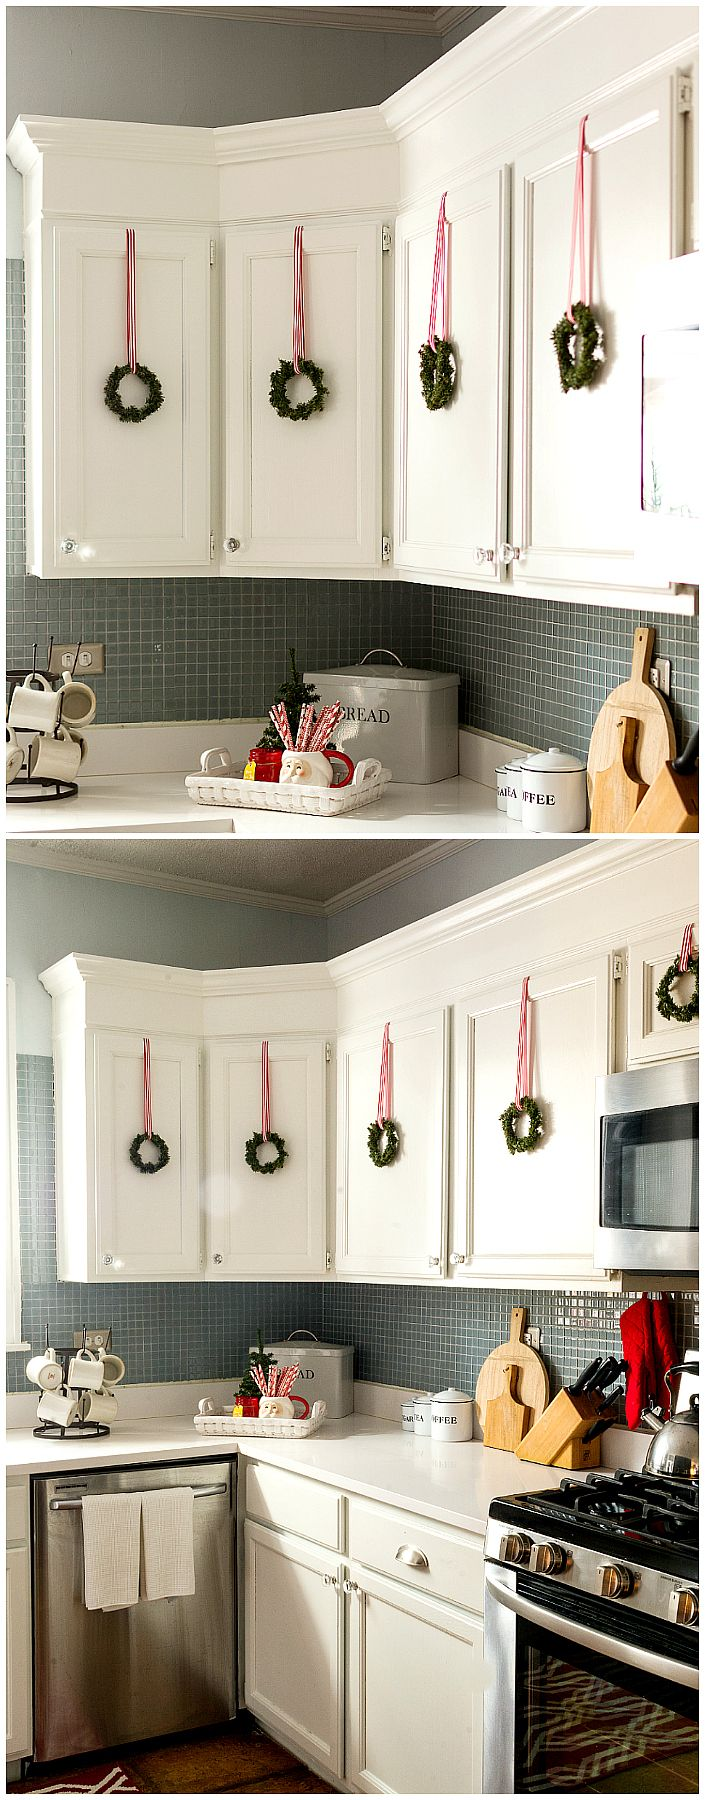 Decorating With Wreaths Indoors Christmas Kitchen Decor Christmas Kitchen Diy Holiday Decor